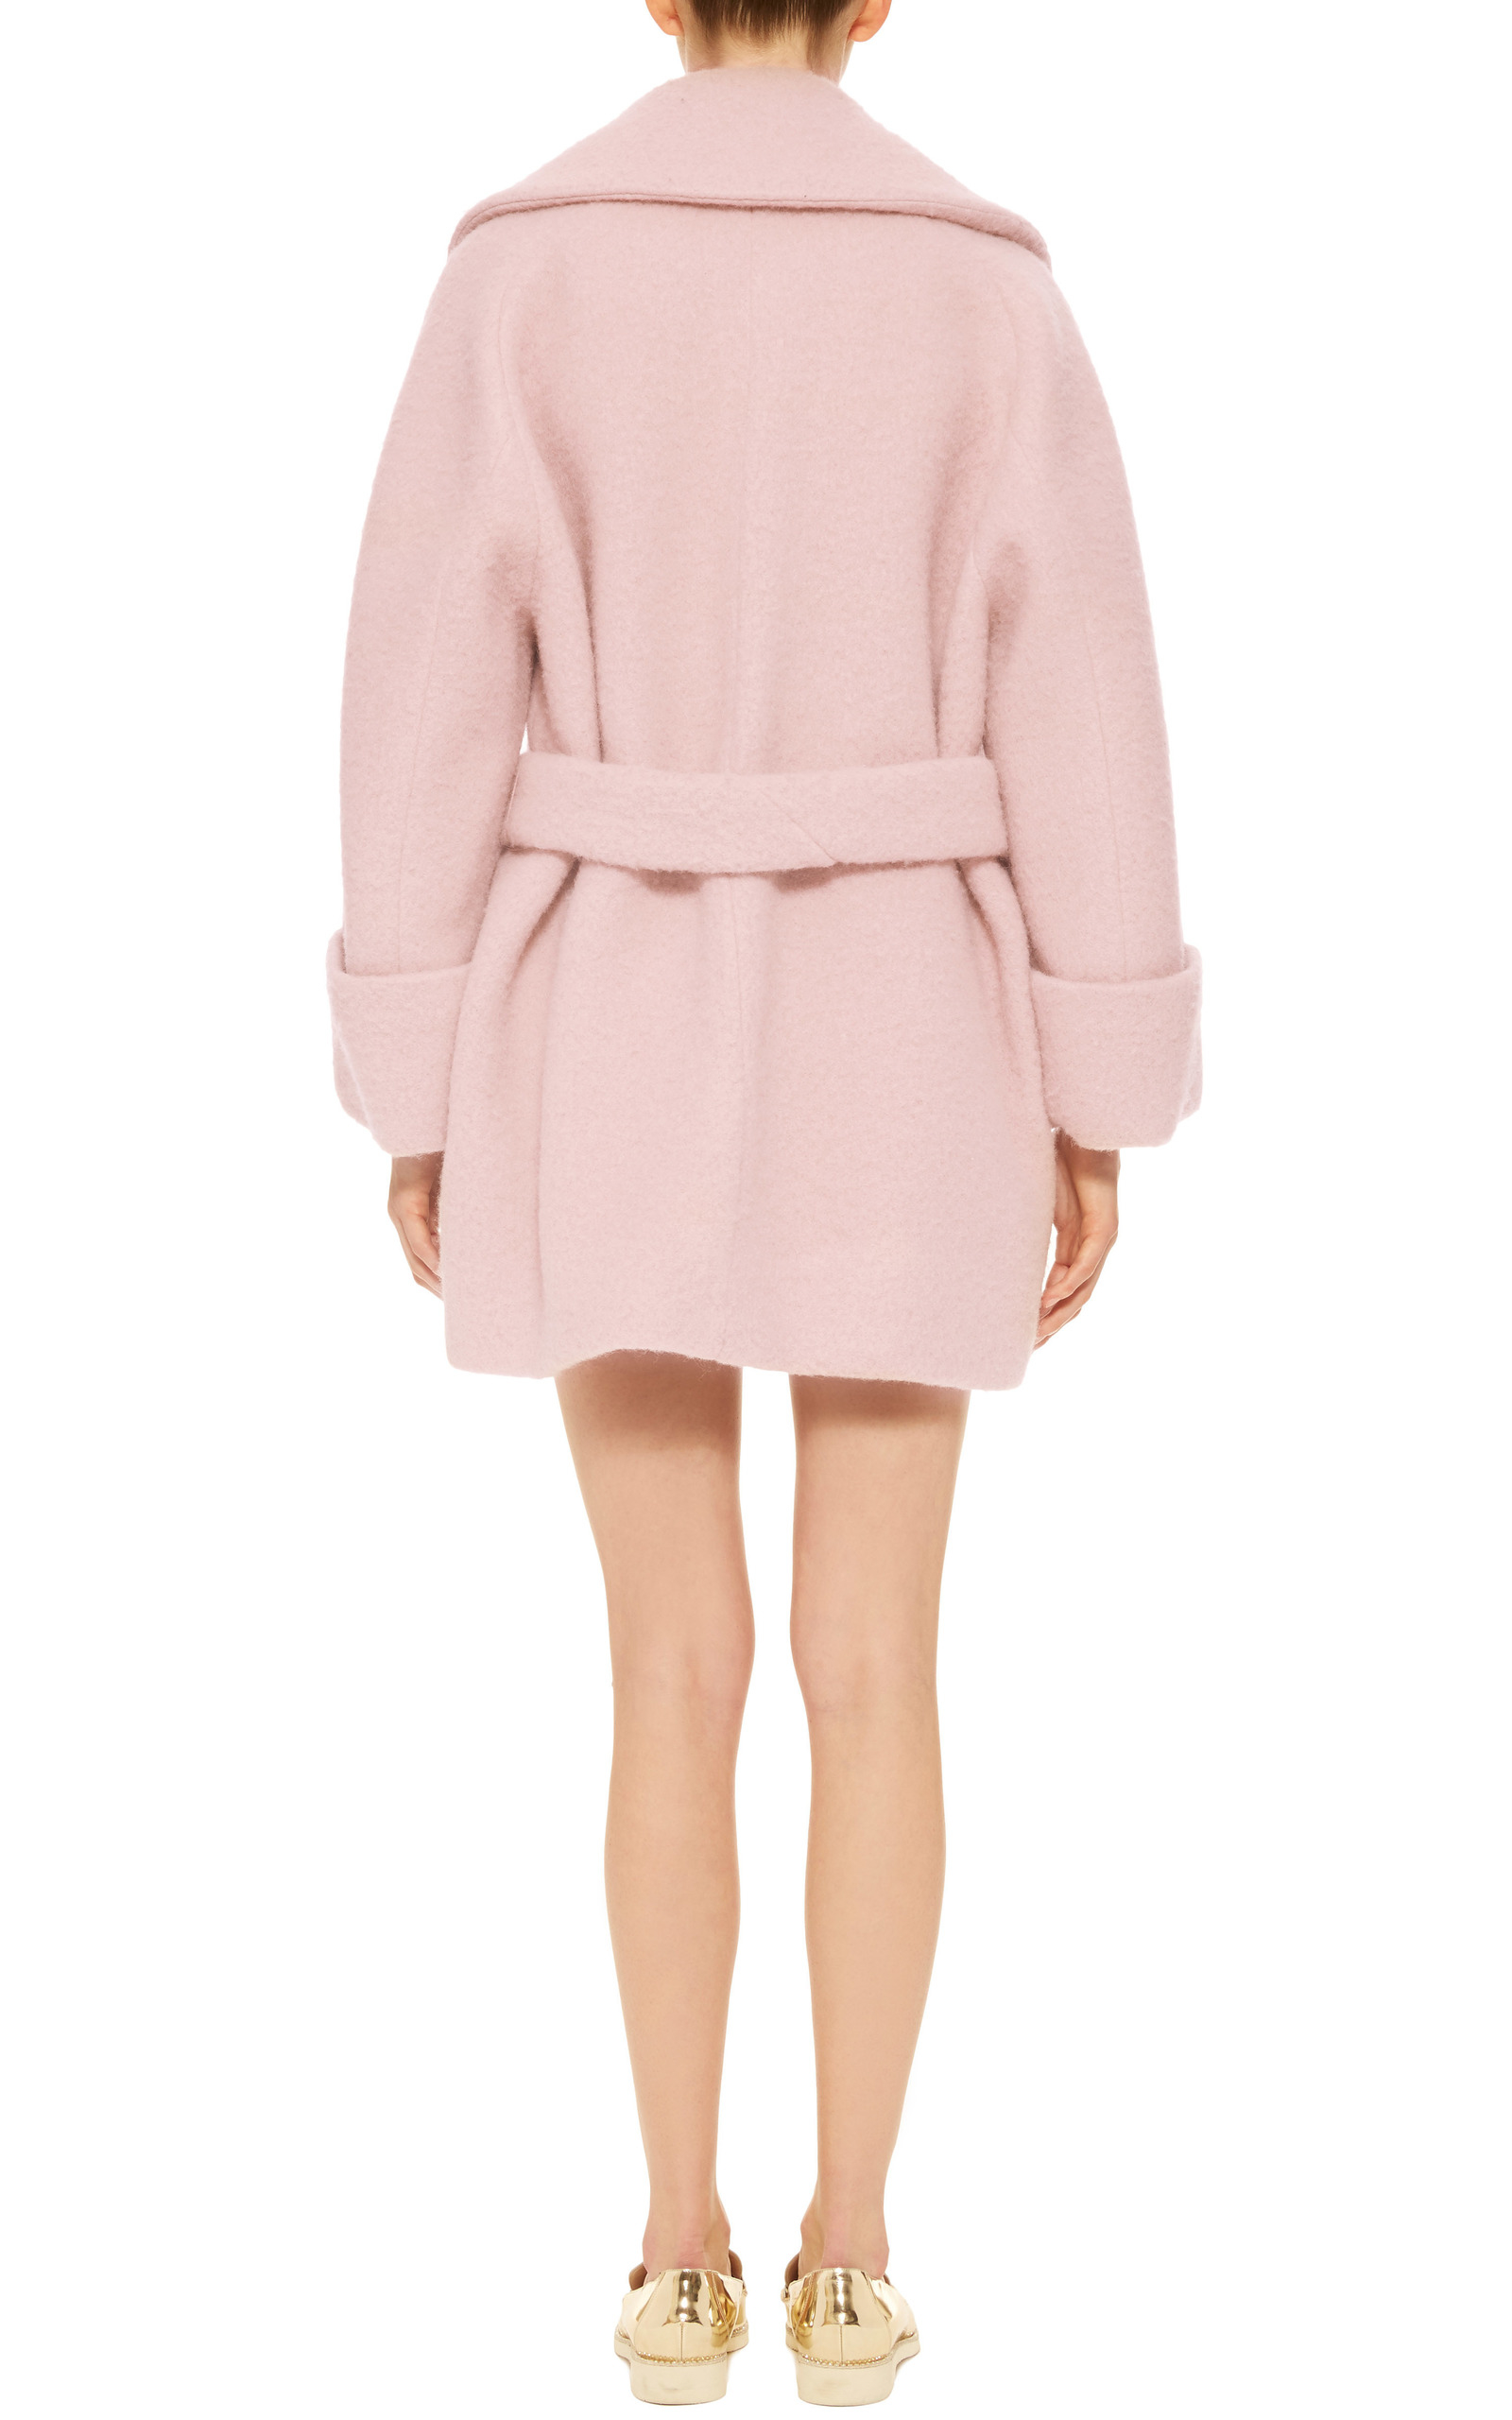 Carven Pink Wool Manteau Court Coat in Pink | Lyst